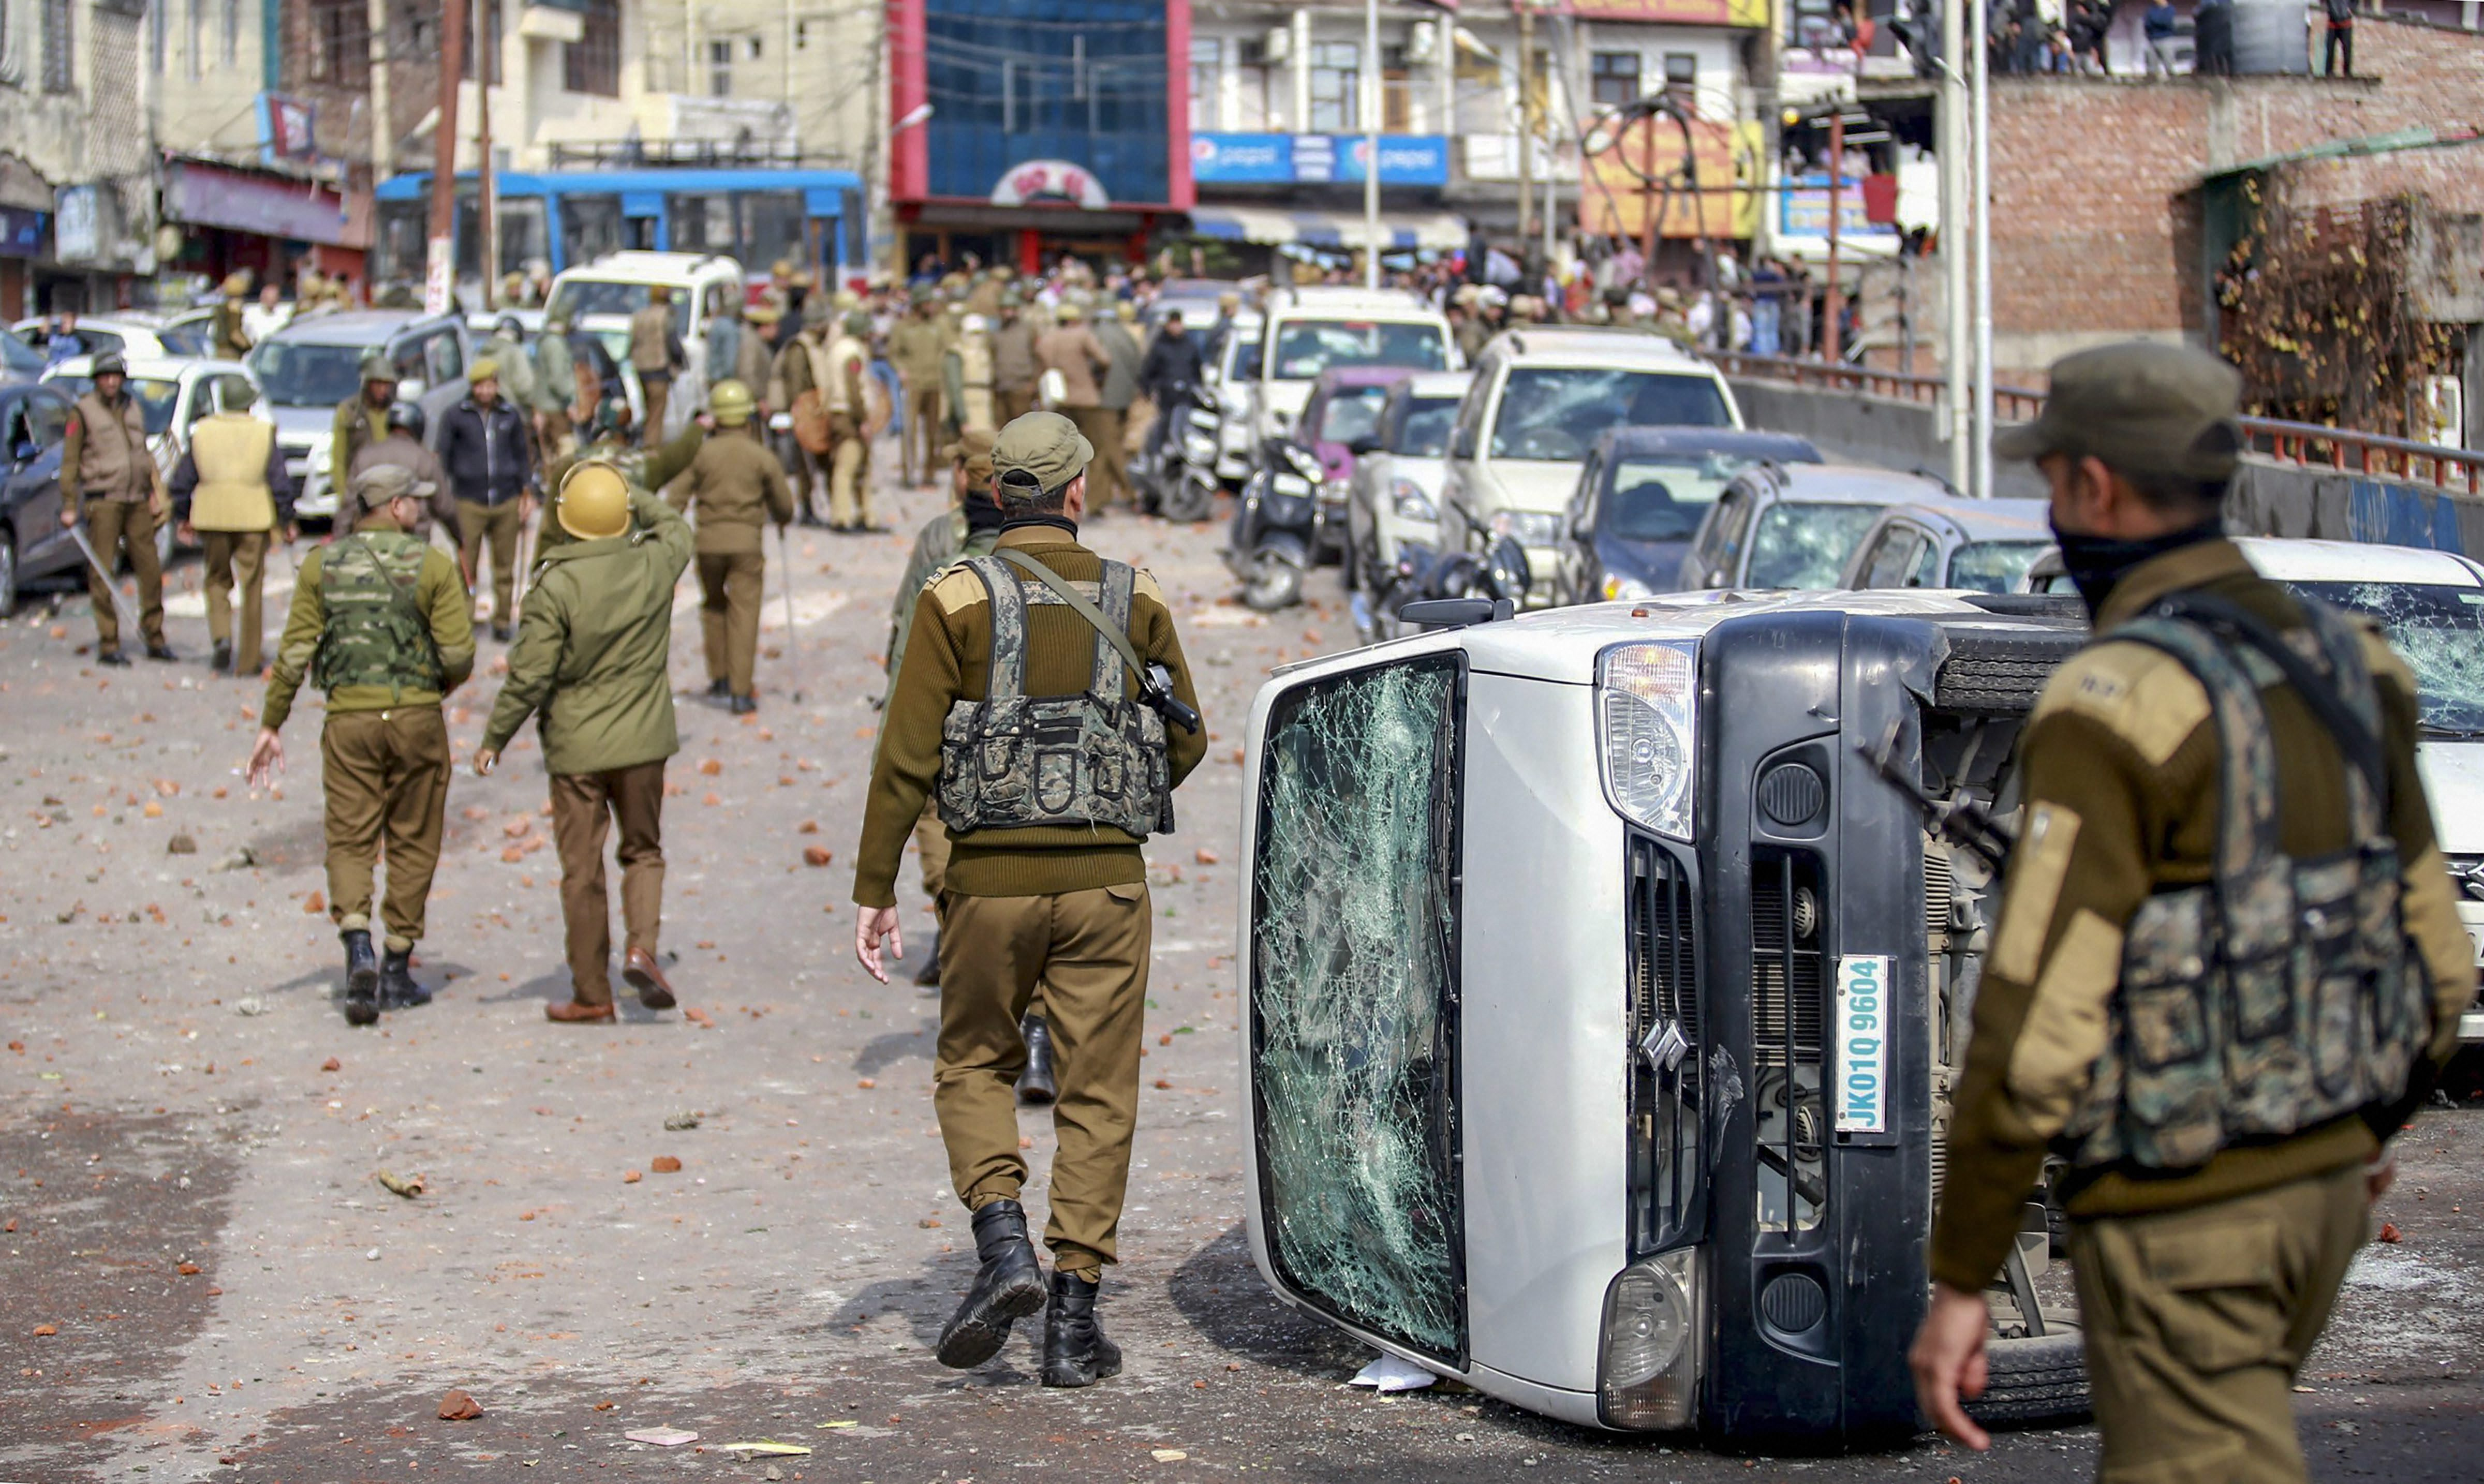 Security personnel patrol a street after people protesting against the Pulwama attack set fire to vehicles in Jammu on Friday.